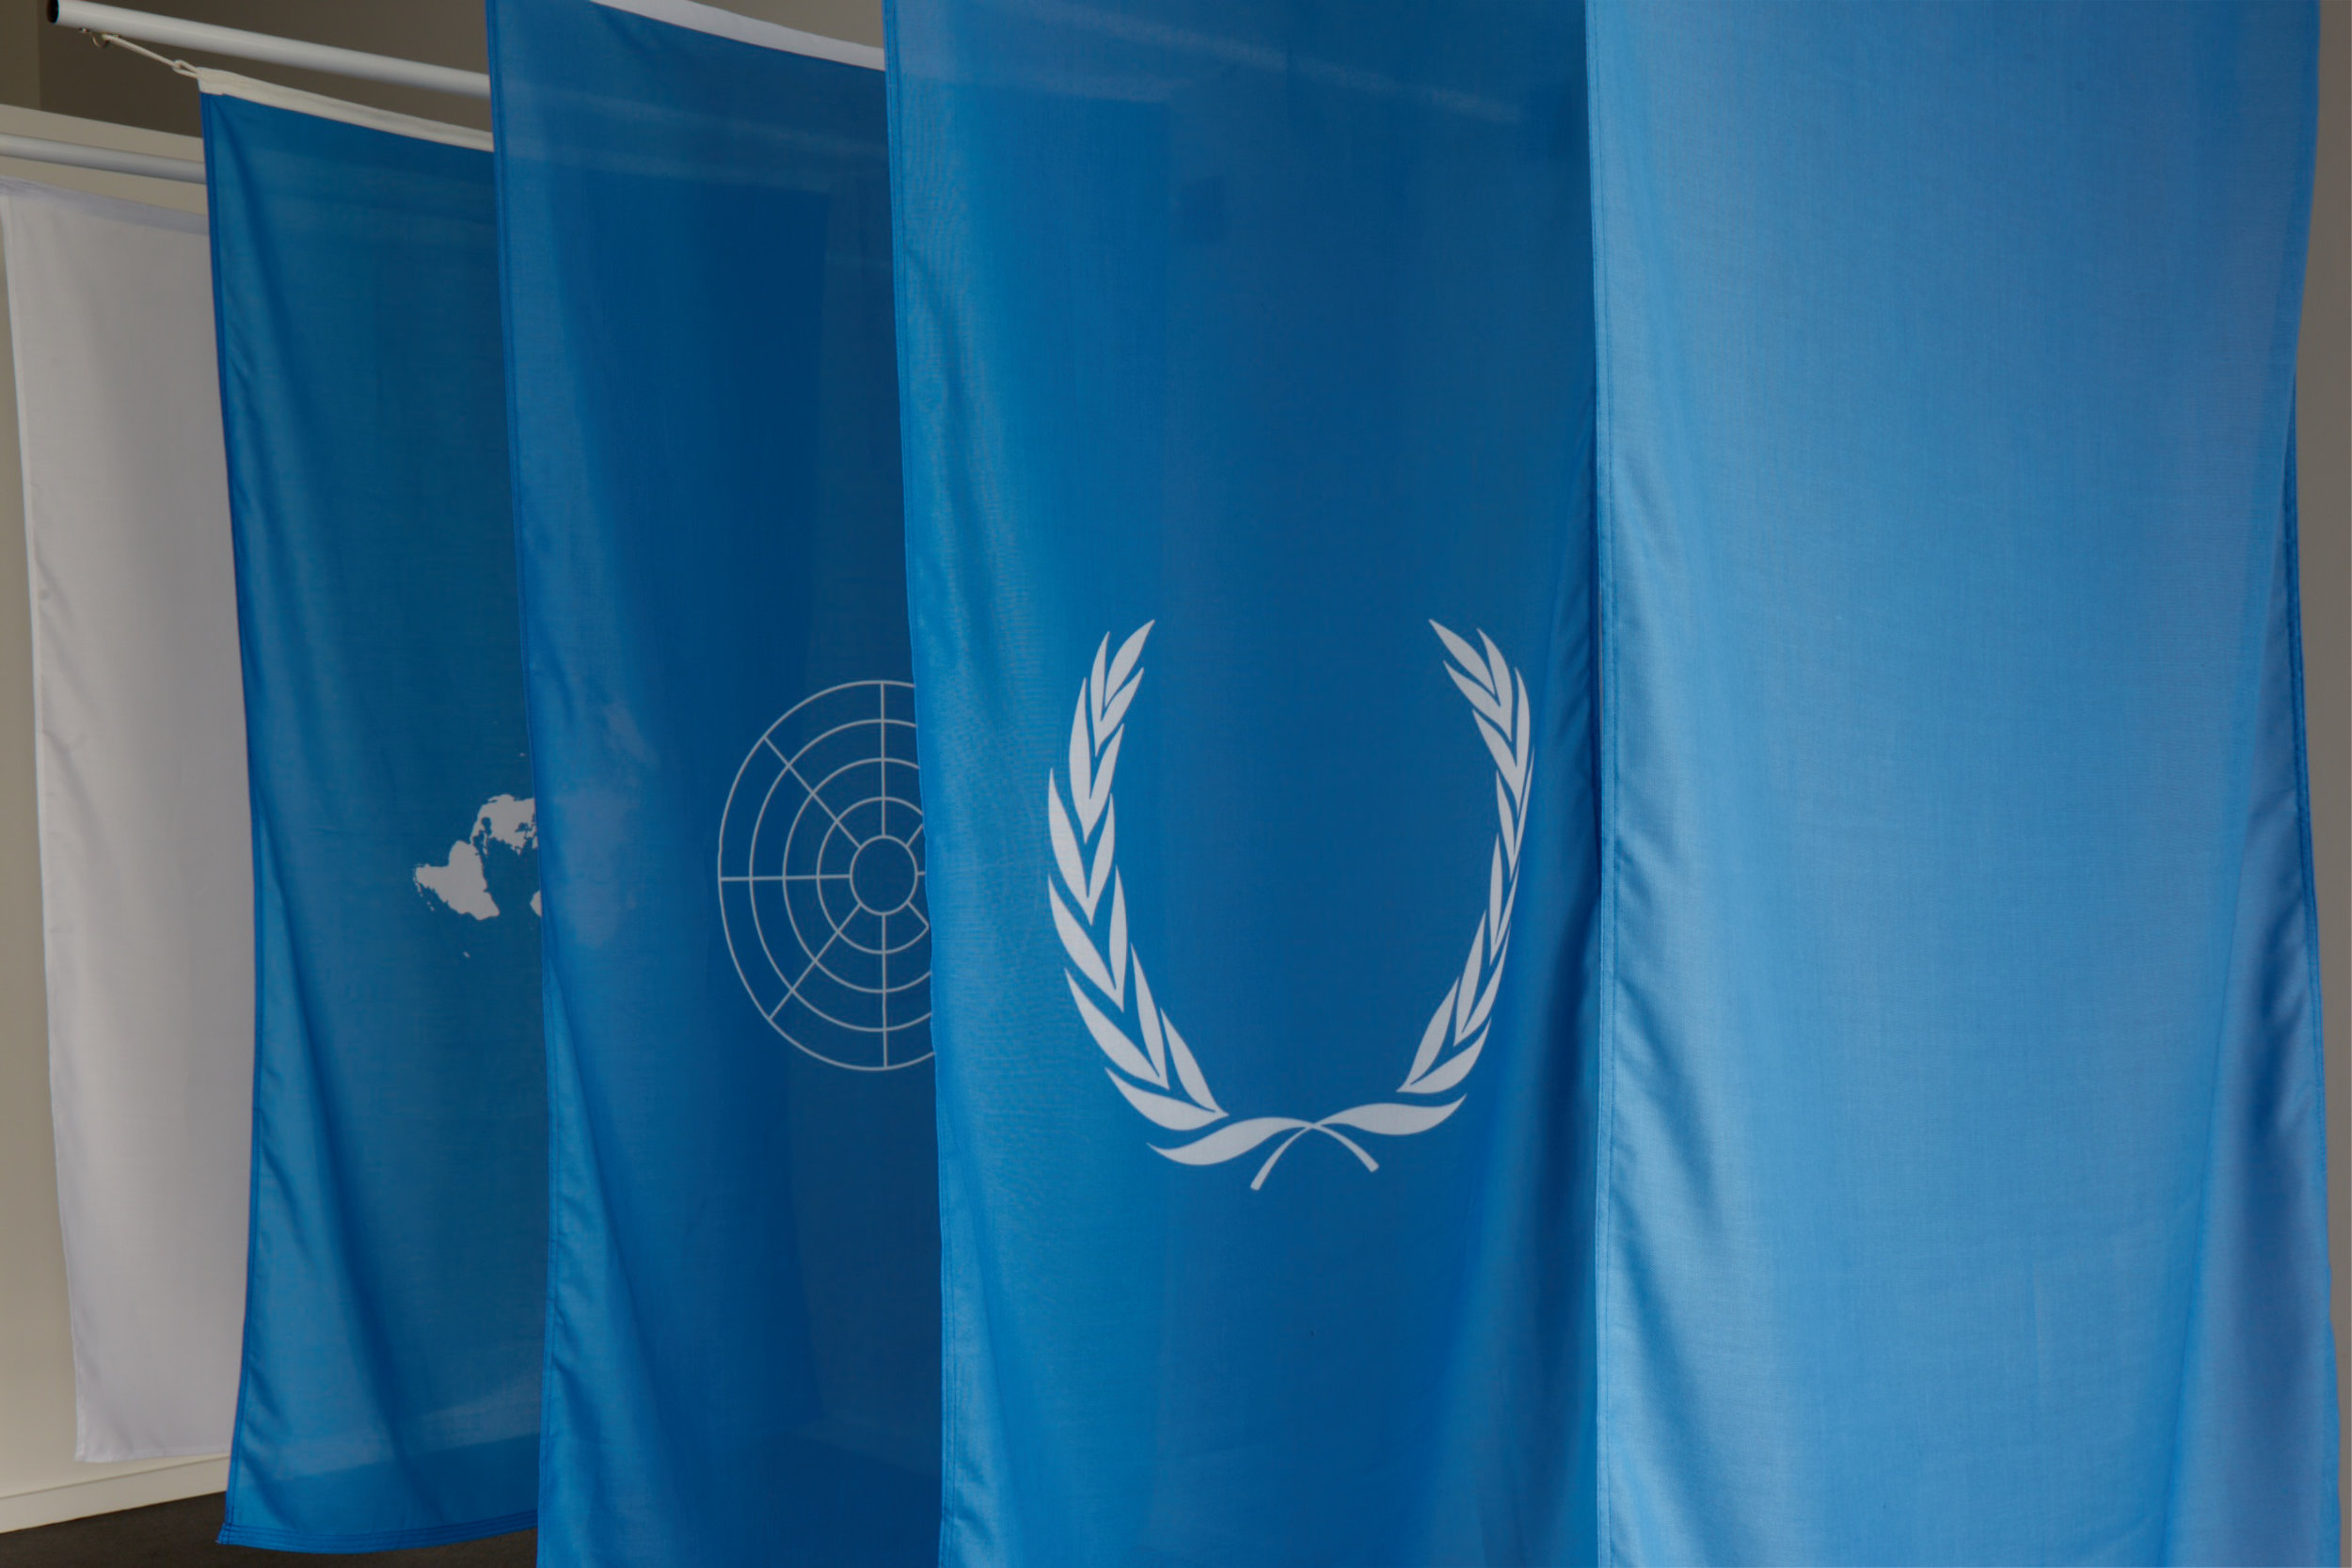 Wayne Youle  (UN)United Nations with a glimpse of blue sky and a dash of surrender,  2017 (detail) Five hand dyed flags and fixings, each flag 1800 mm x 900 mm Edition of 3   ______